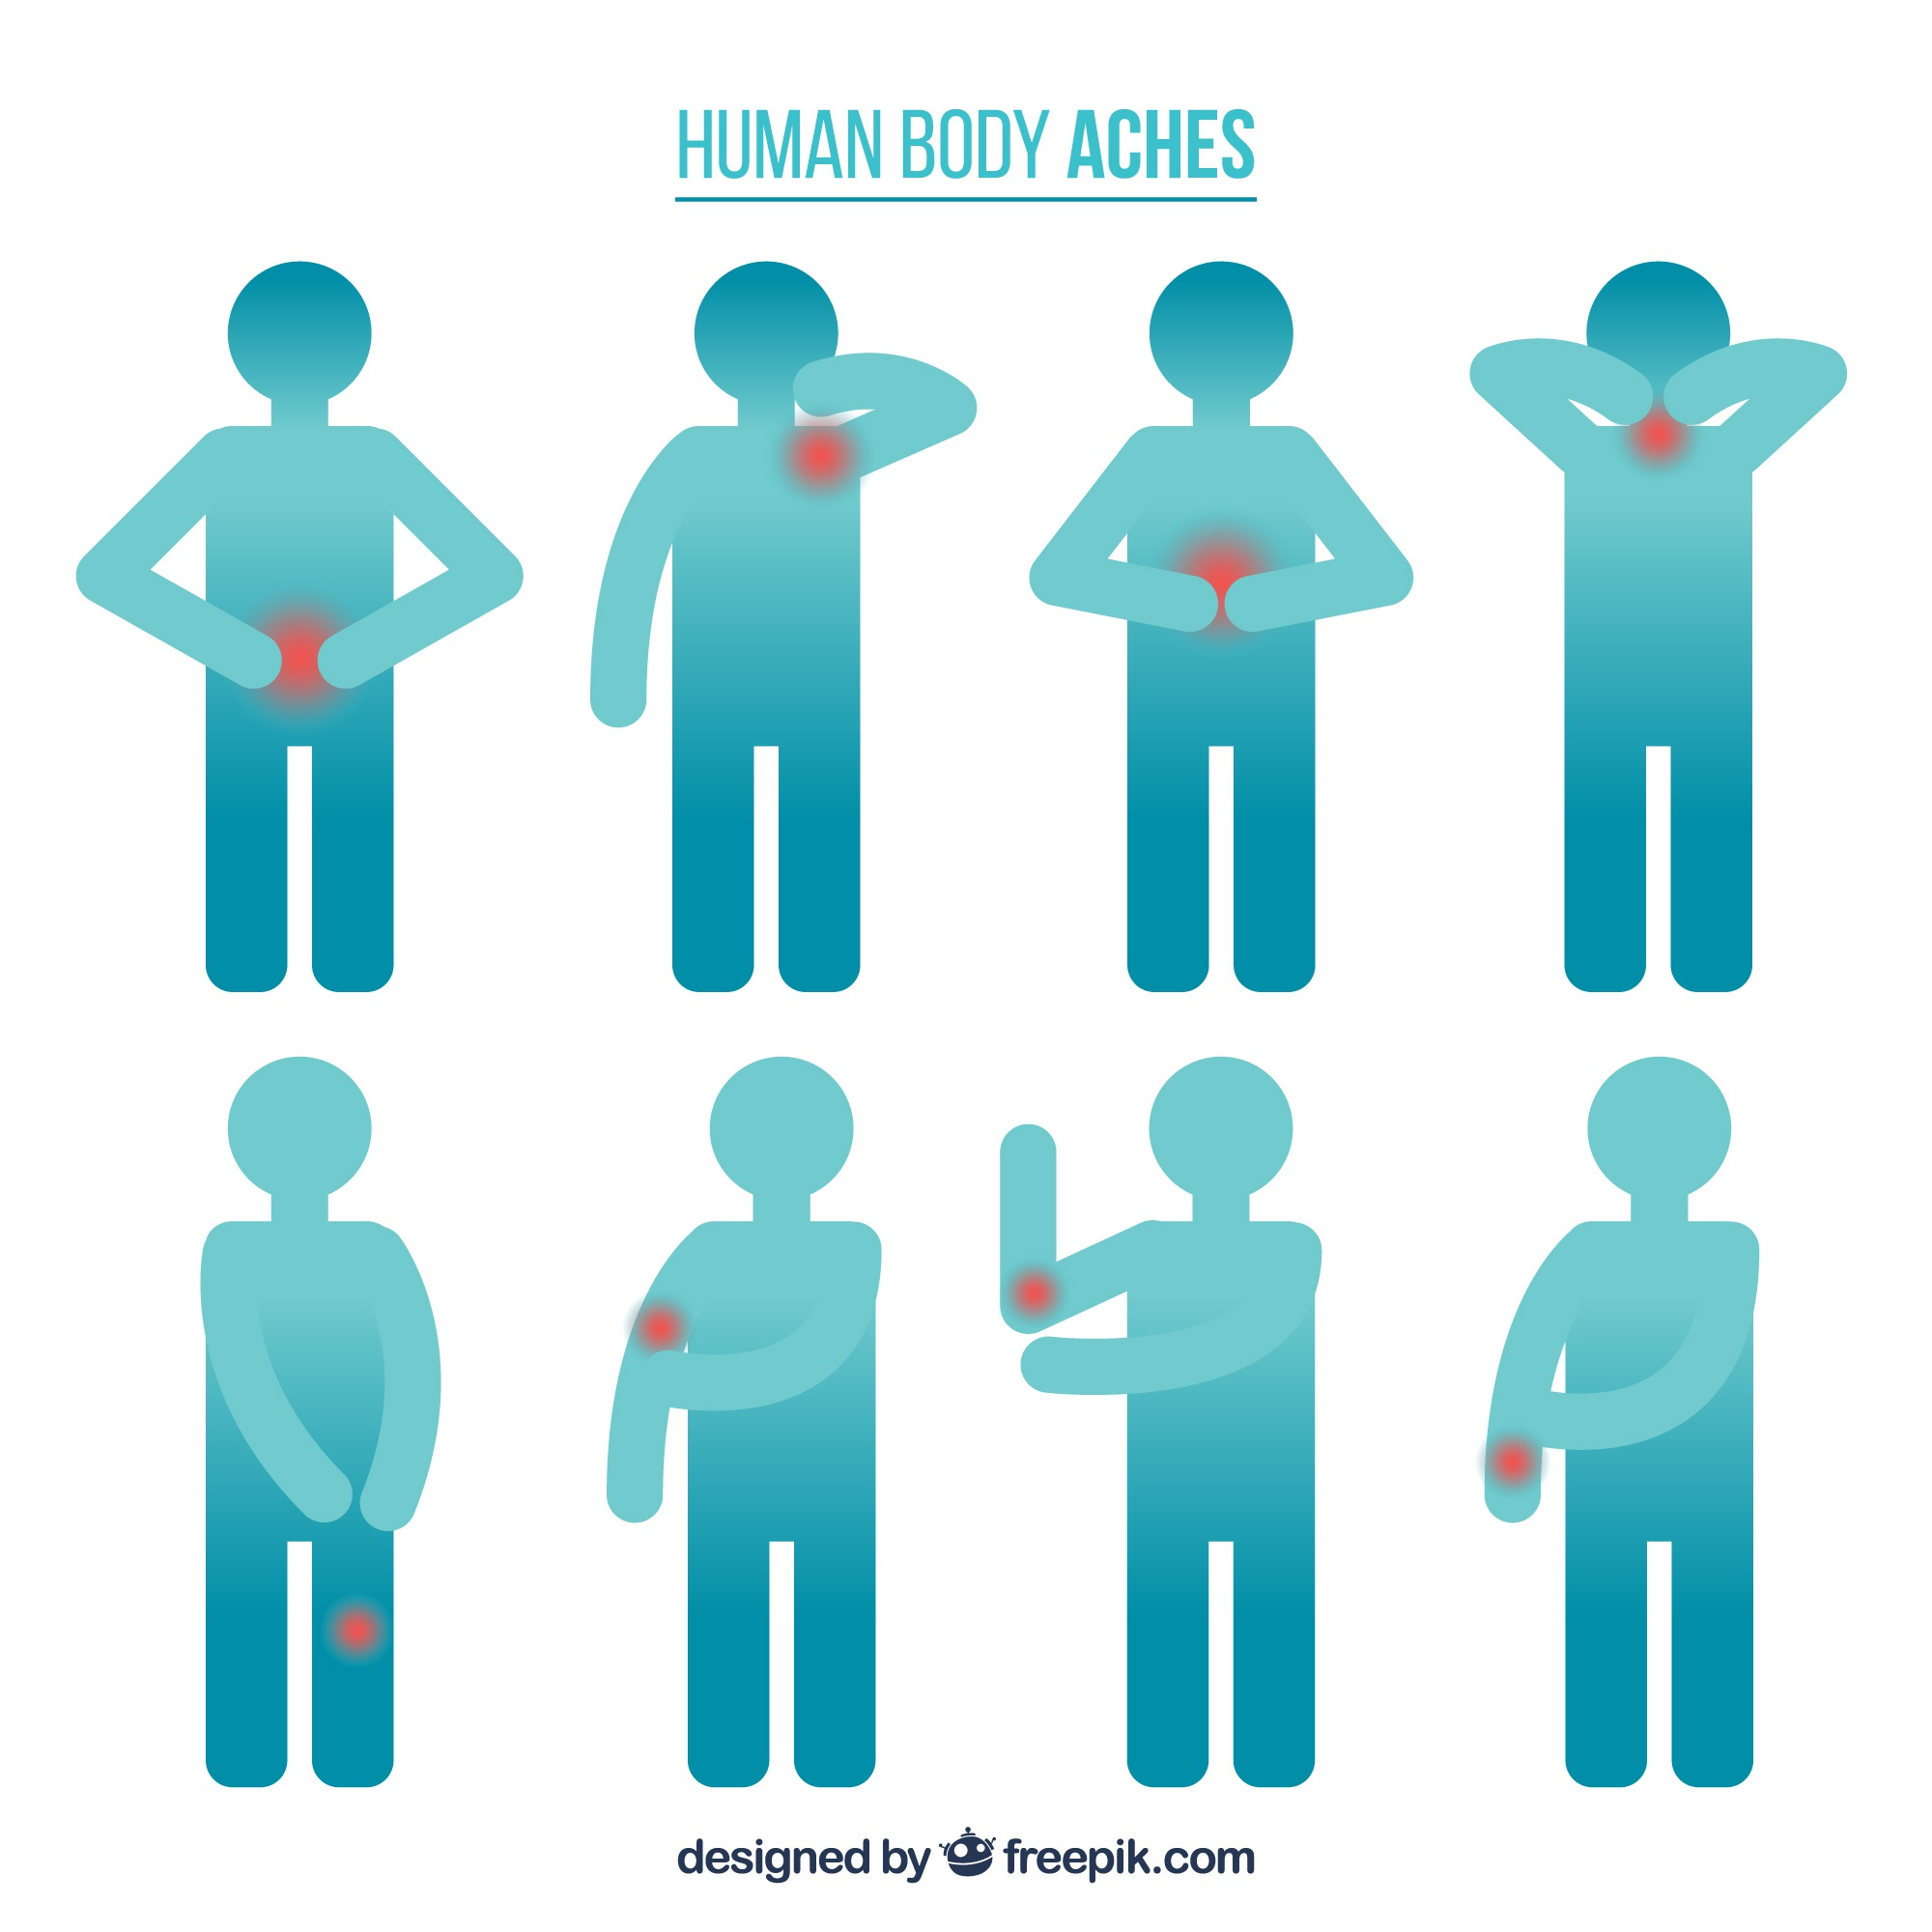 Human body aches